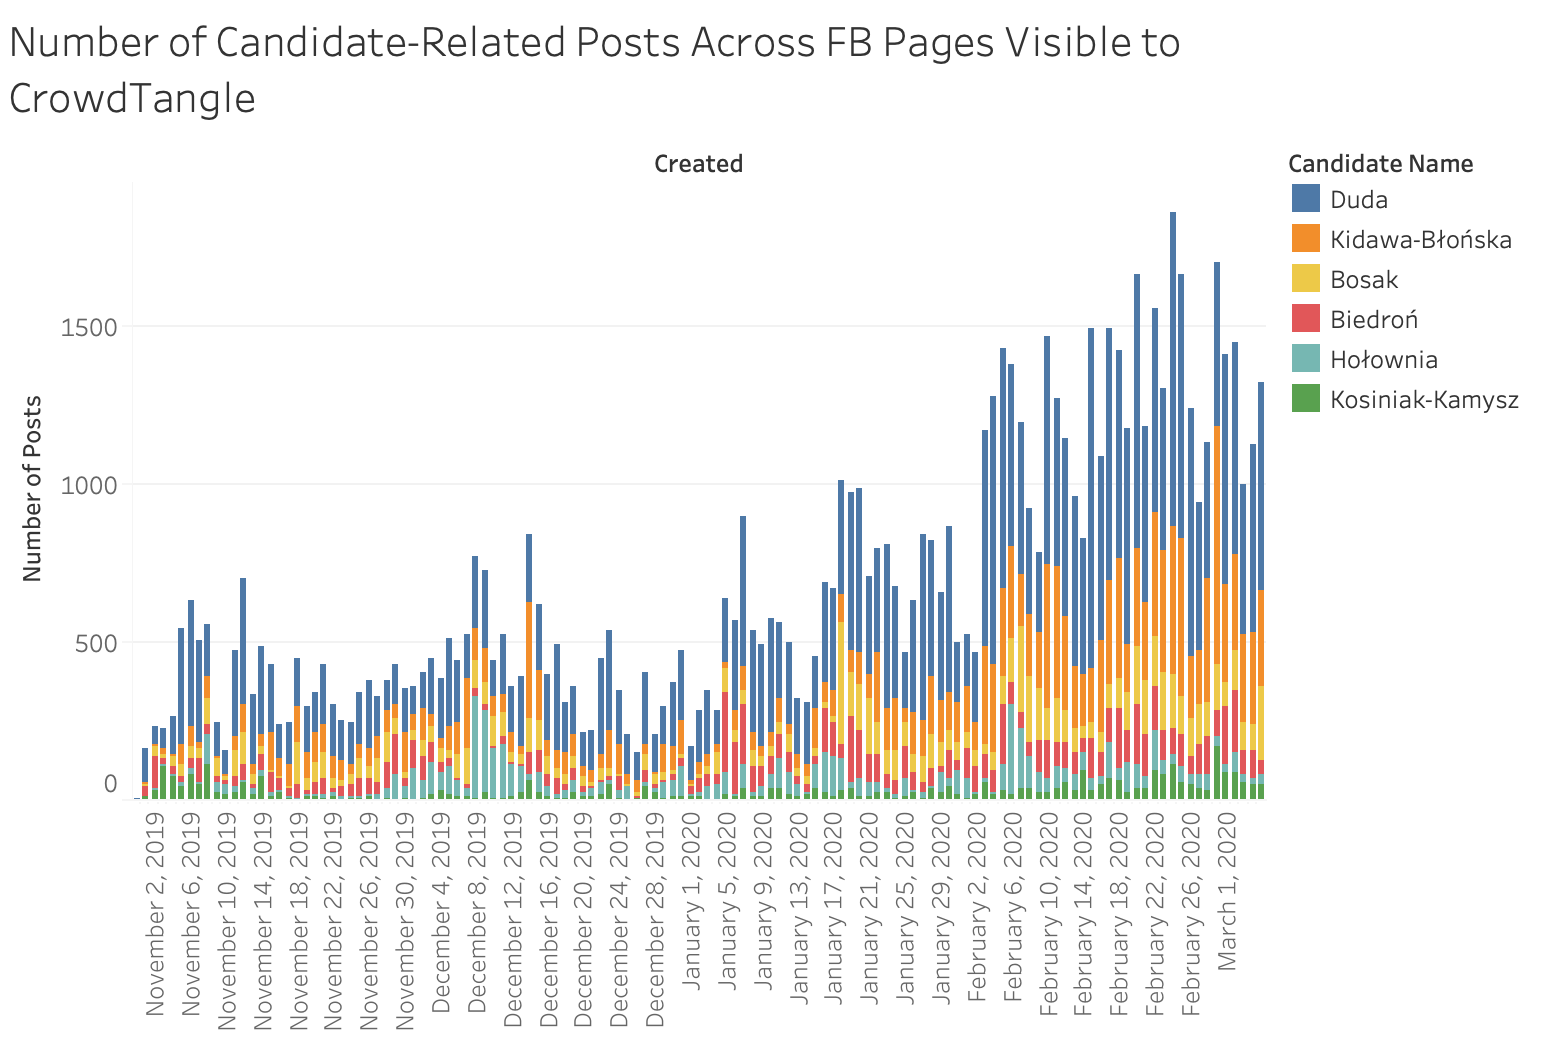 Number of Facebook posts referring to candidates' names by day from Nov 1, 2019 to March 5, 2020 across all Pages and Groups visible to CrowdTangle